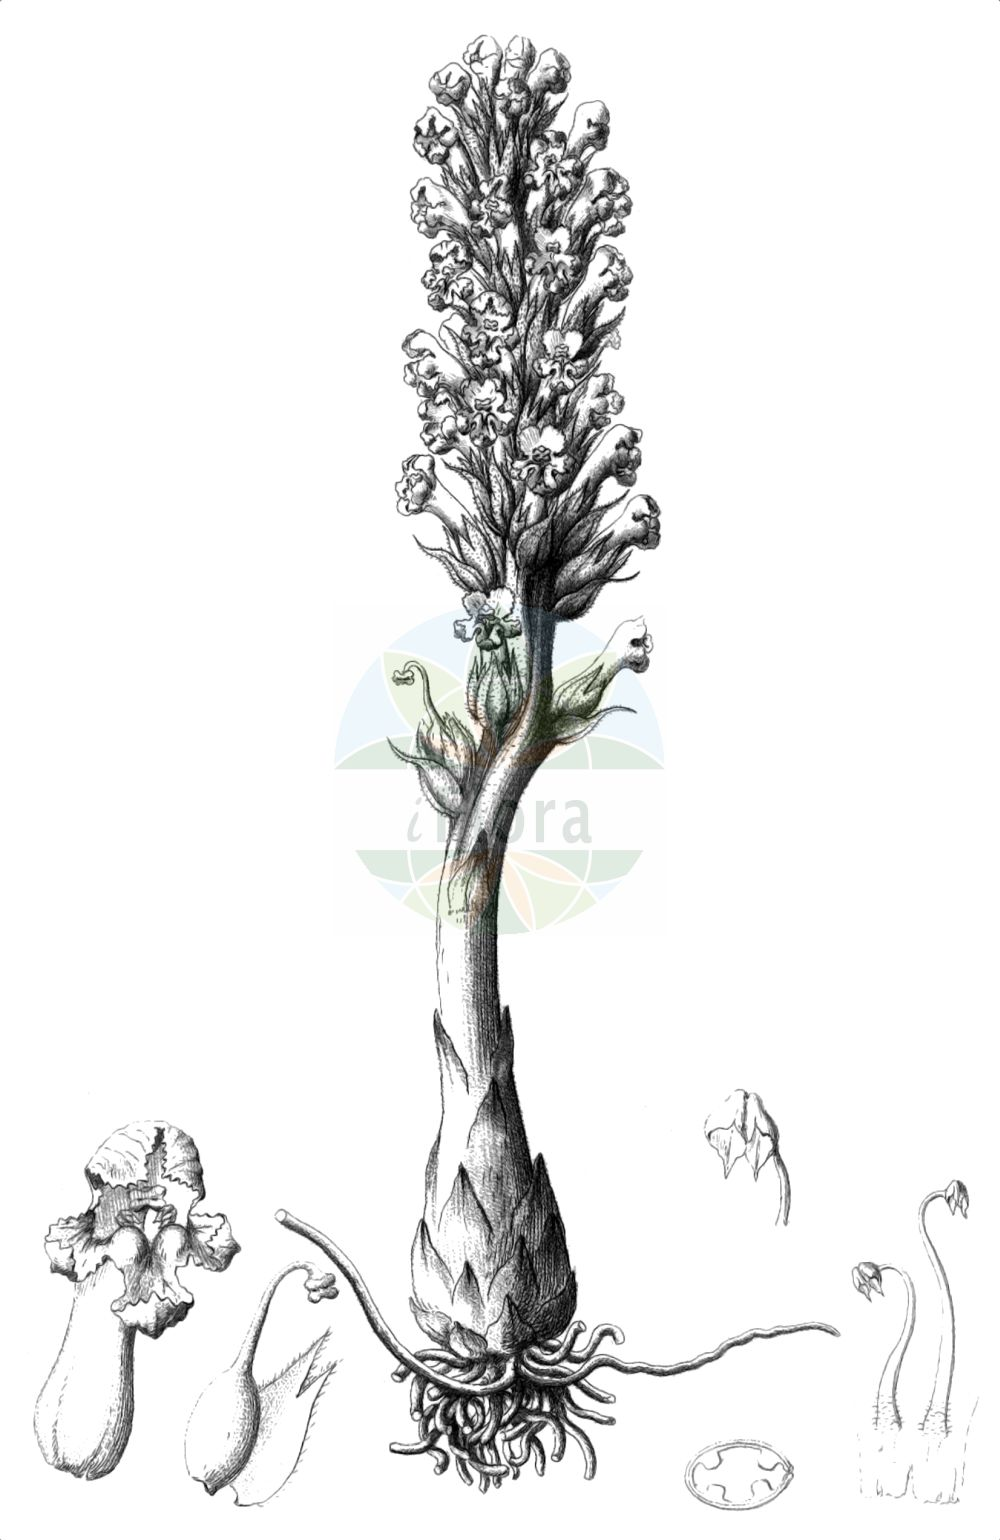 Historische Abbildung von Orobanche coerulescens (Blaeuliche Sommerwurz - Blue Broomrape). Das Bild zeigt Blatt, Bluete, Frucht und Same. ---- Historical Drawing of Orobanche coerulescens (Blaeuliche Sommerwurz - Blue Broomrape).The image is showing leaf, flower, fruit and seed.(Orobanche coerulescens,Blaeuliche Sommerwurz,Blue Broomrape,Orobanche coerulescens,Orobanche korshinskyi,Blaeuliche Sommerwurz,Blue Broomrape,Orobanche,Sommerwurz,Broomrape,Orobanchaceae,Sommerwurzgewaechse,Broomrape family,Blatt,Bluete,Frucht,Same,leaf,flower,fruit,seed,Reichenbach (1823-1832))